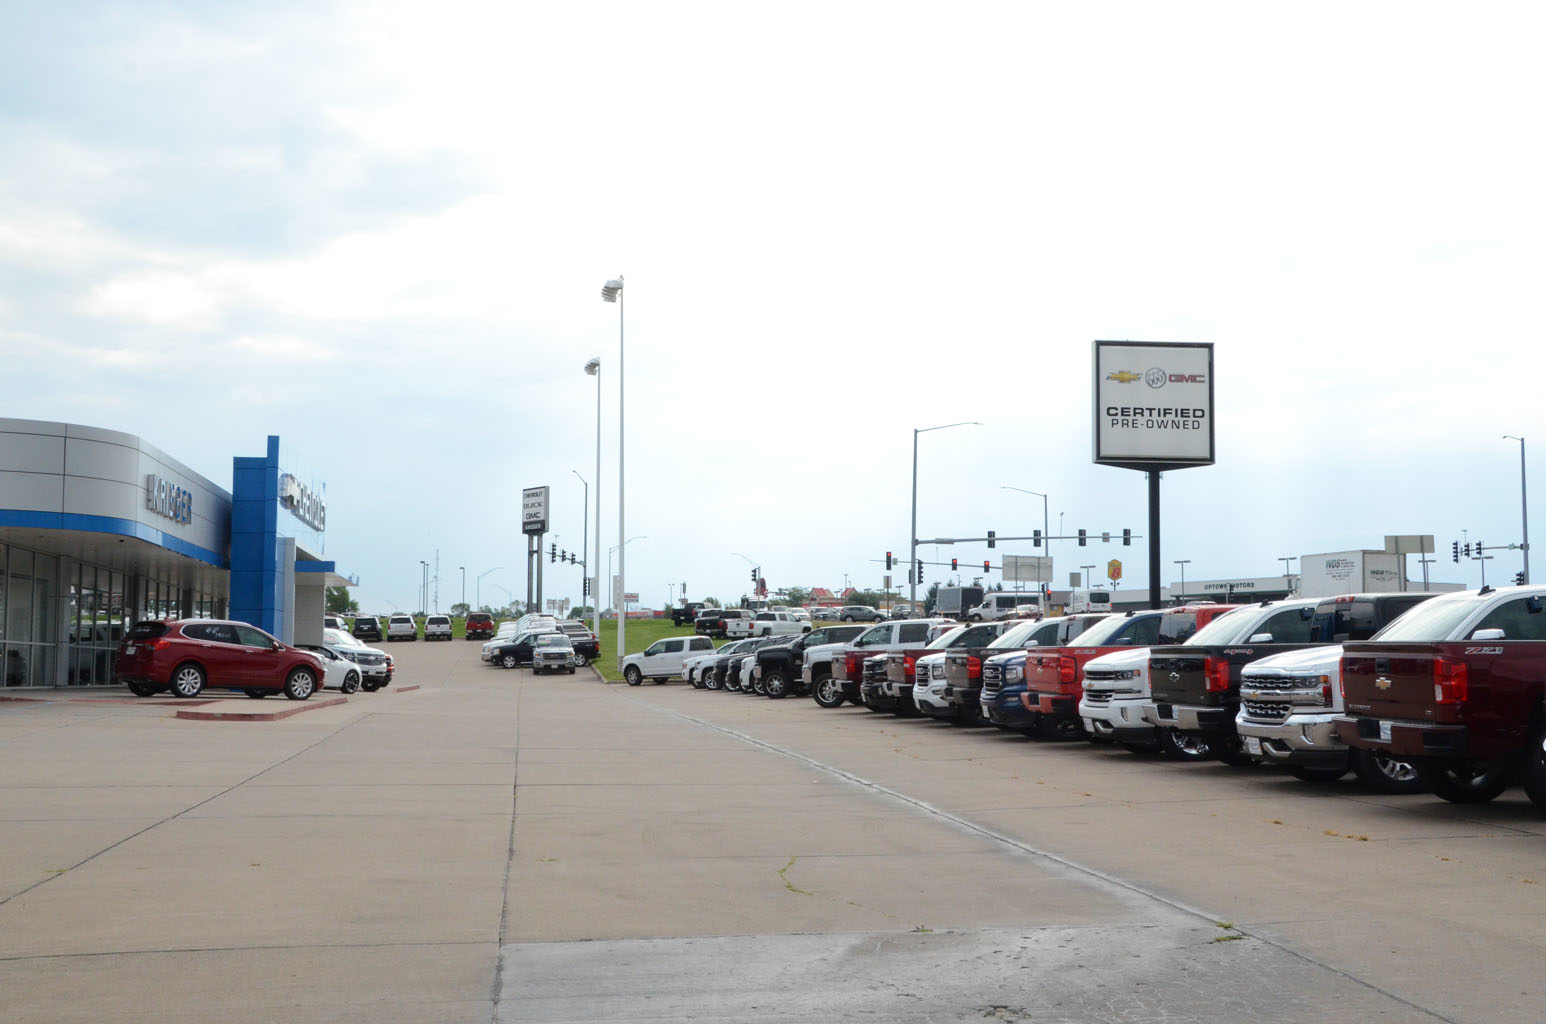 Jeep Dealers In Iowa >> Kriegers Chevrolet Buick GMC Muscatine, Muscatine Iowa (IA) - LocalDatabase.com